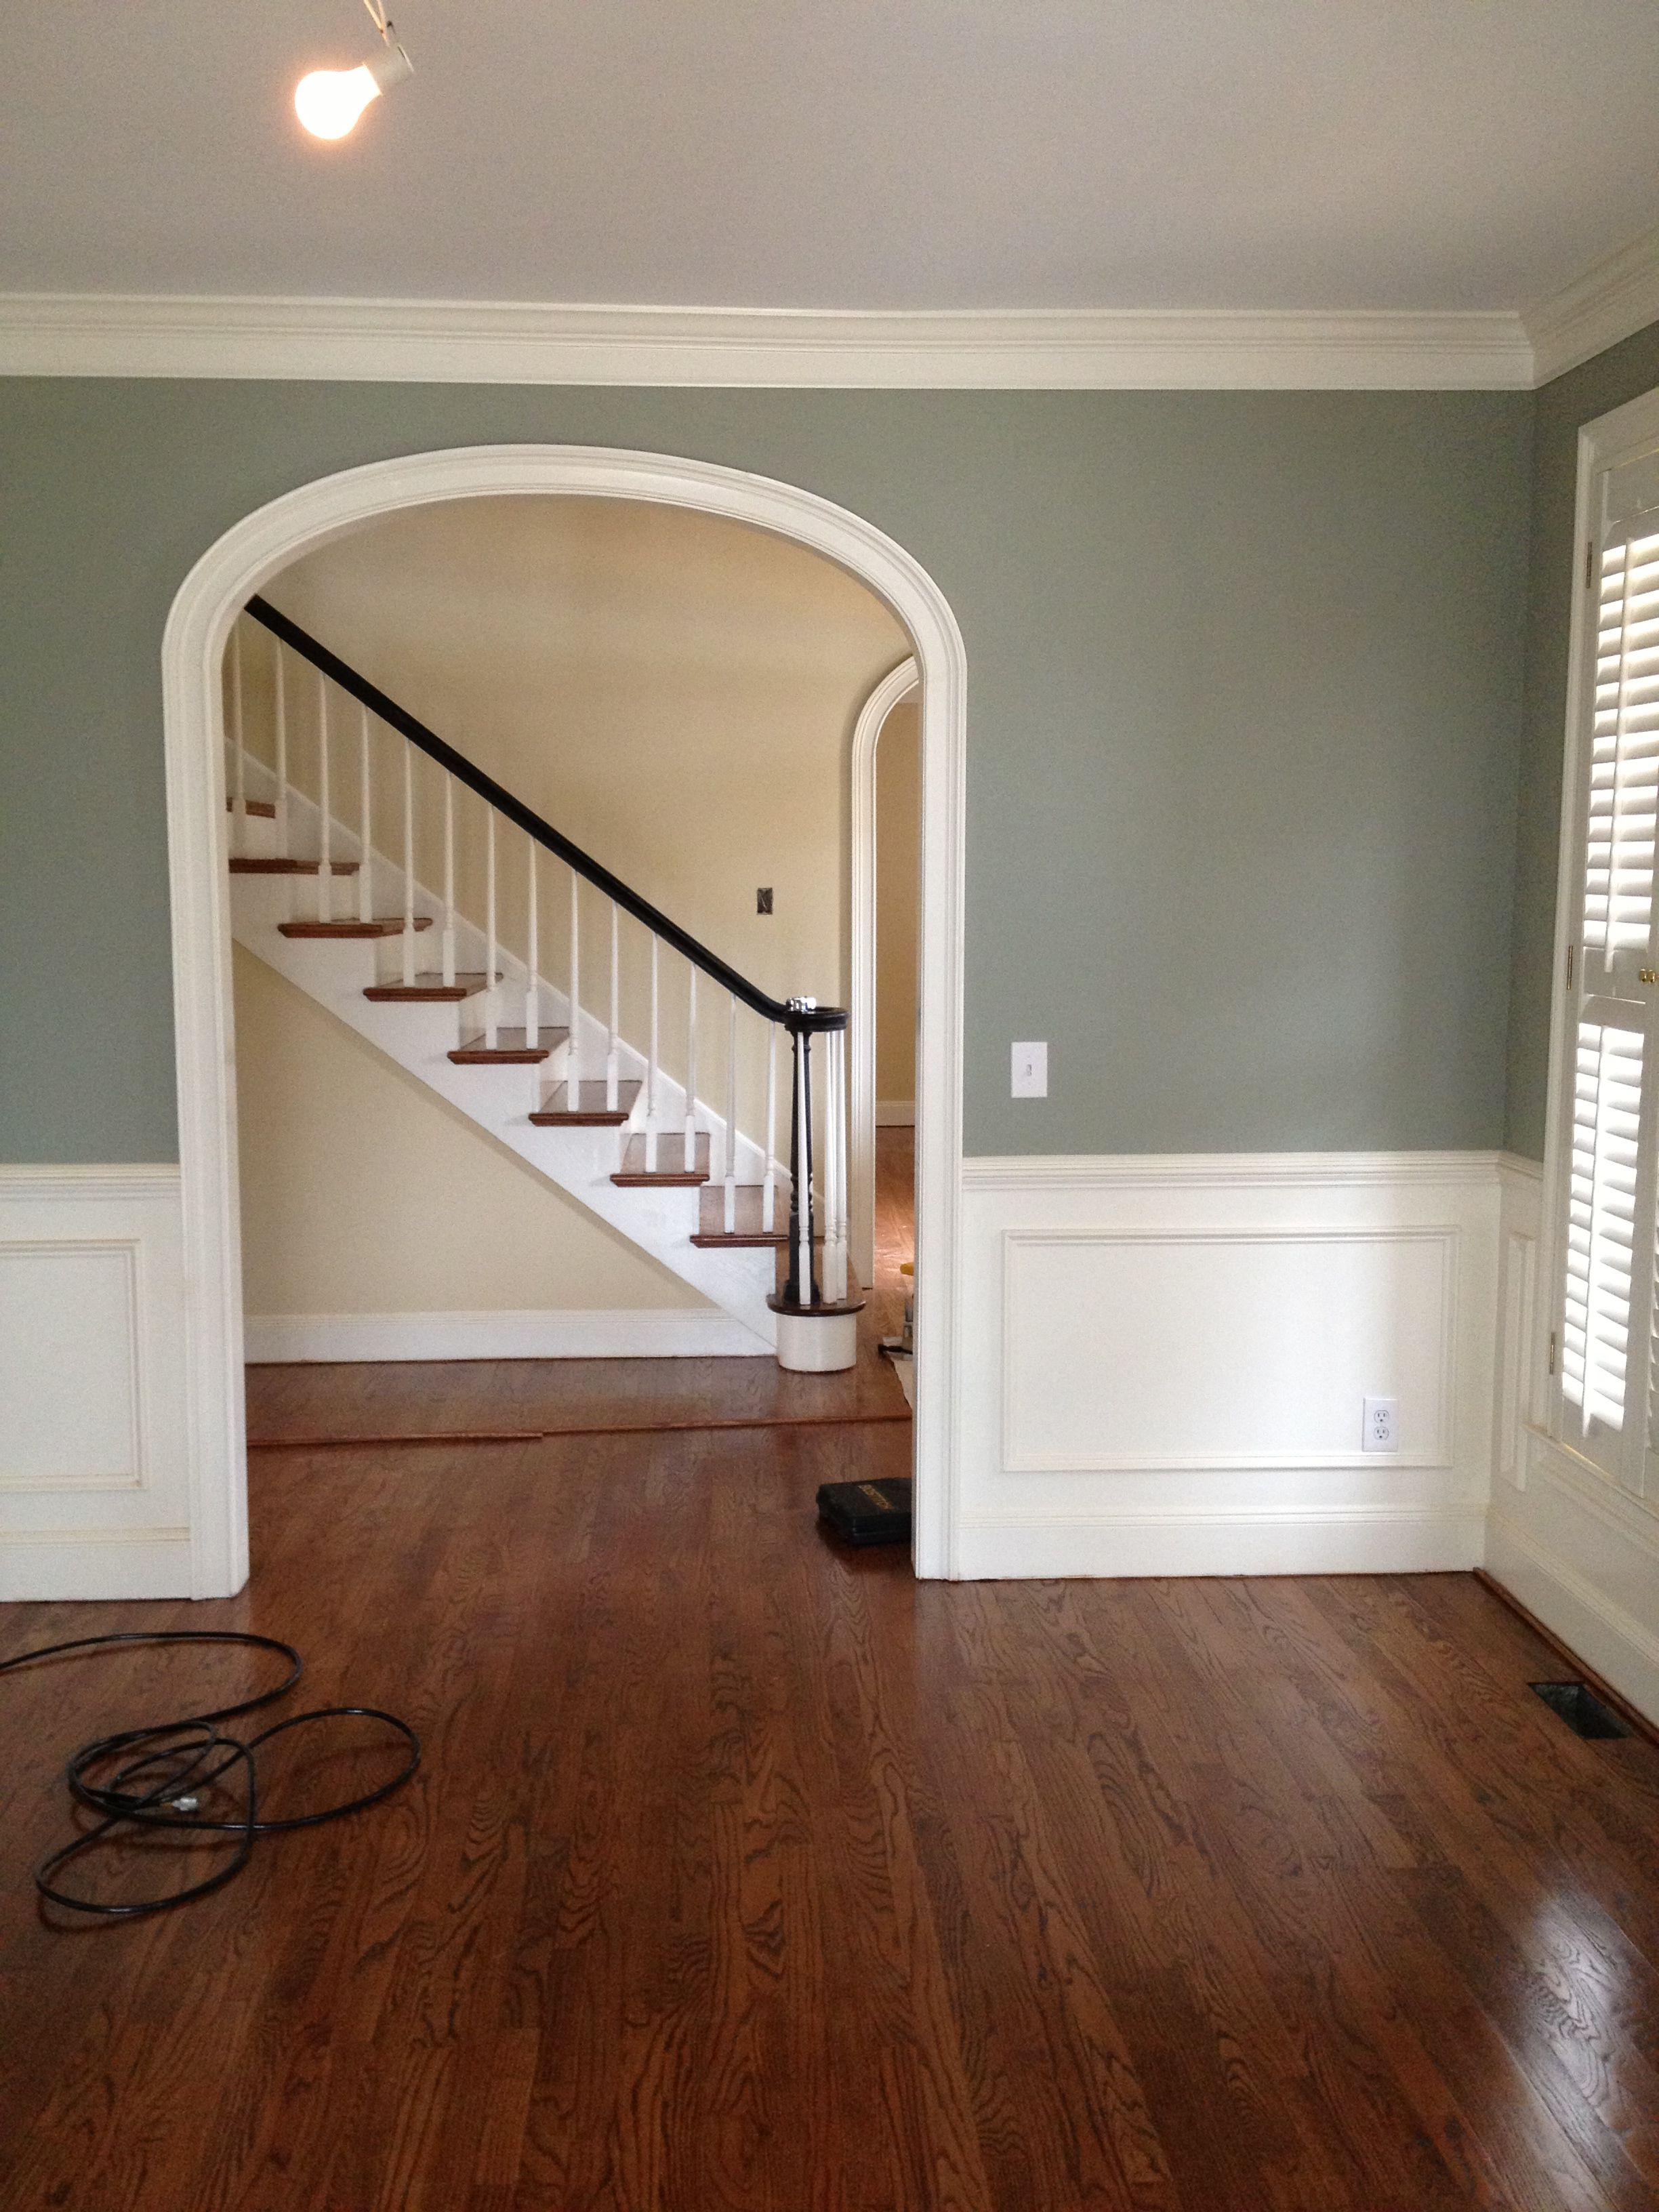 Wall Paint Interior Home Wall Painting Colours: SW Escape Gray - Dining Room?